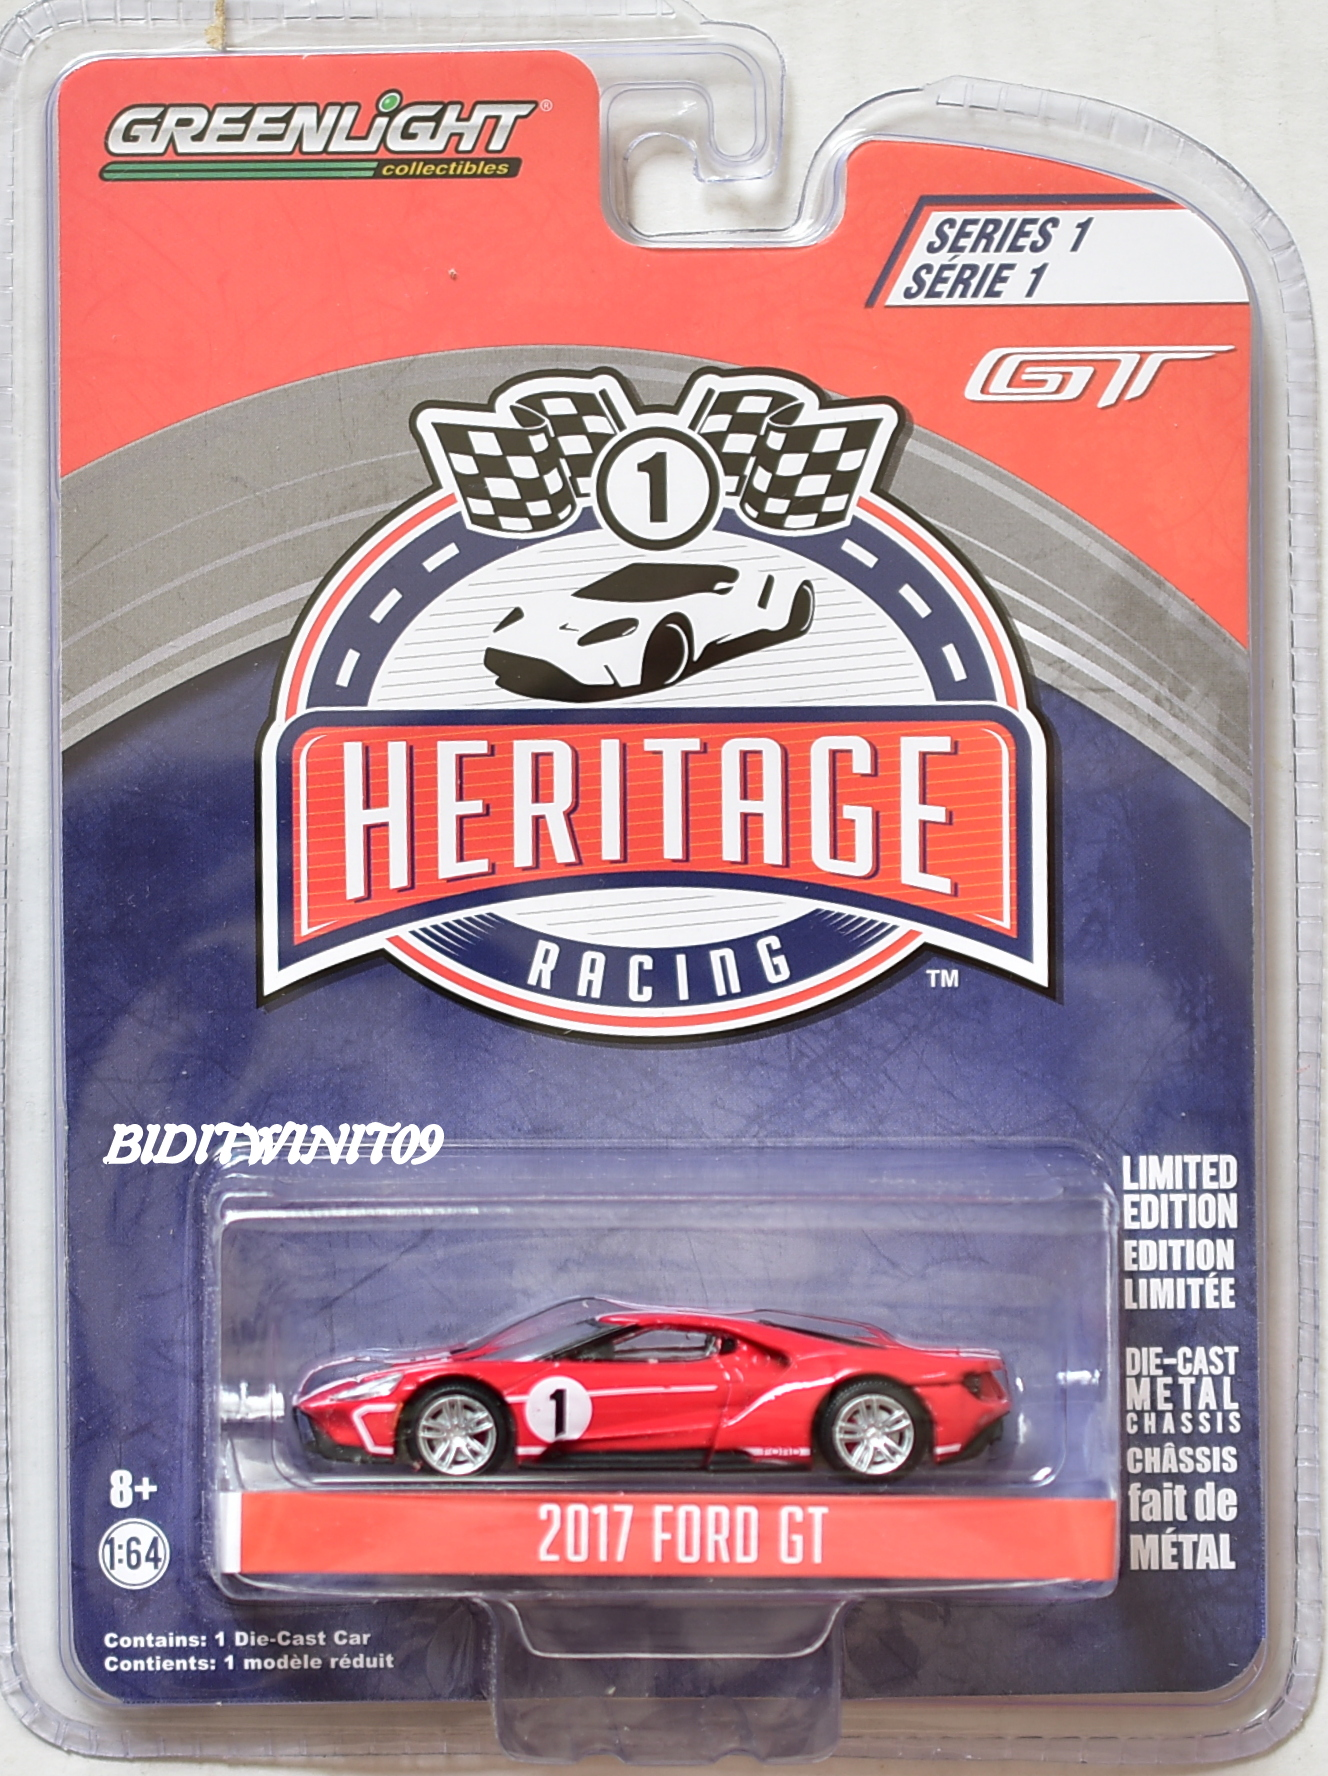 GREENLIGHT HERITAGE RACING SERIES 1 2017 FORD GT RED